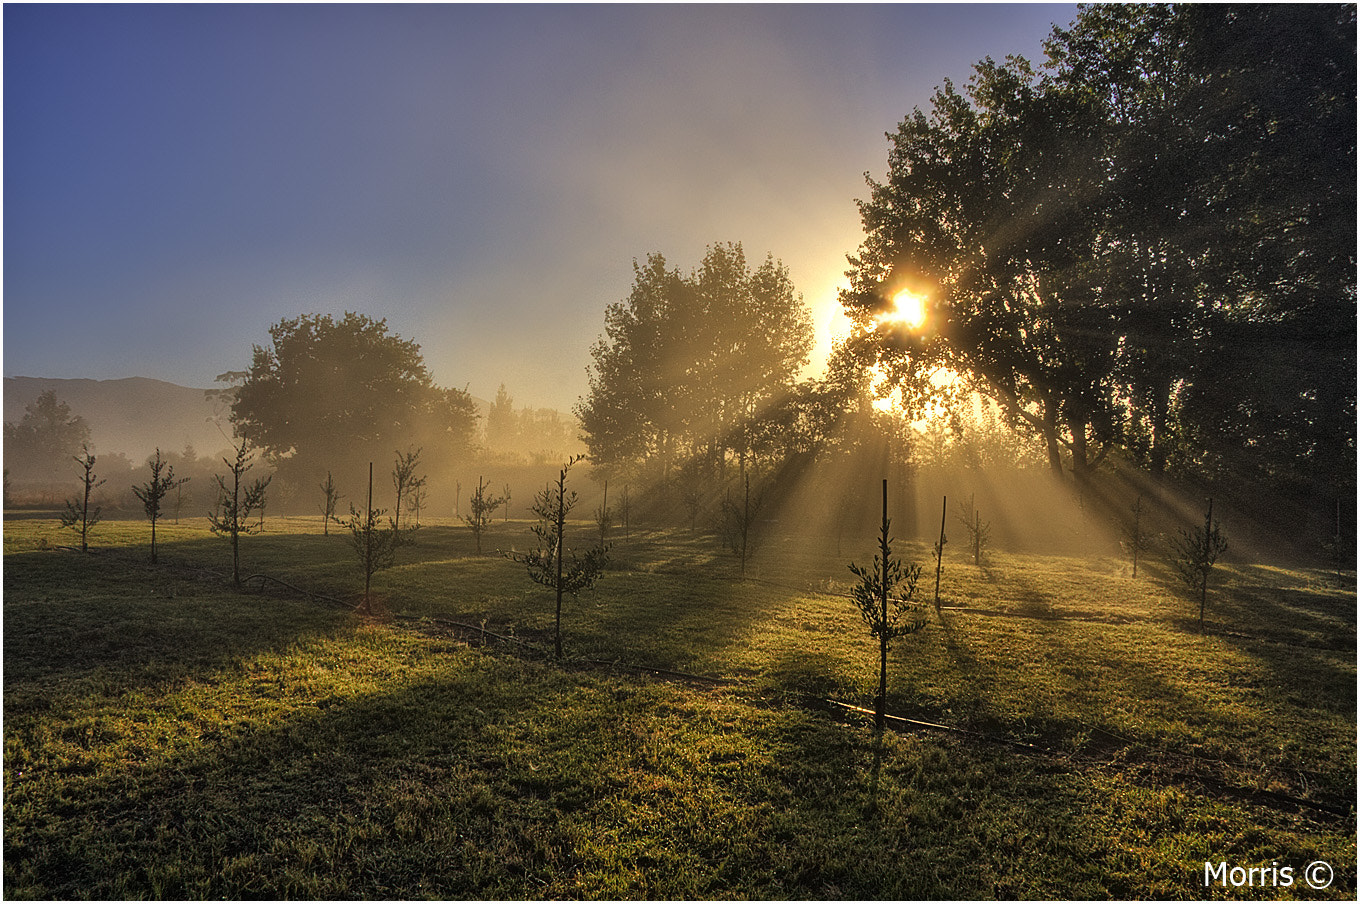 Photograph Morning Farm by Dave Morris on 500px